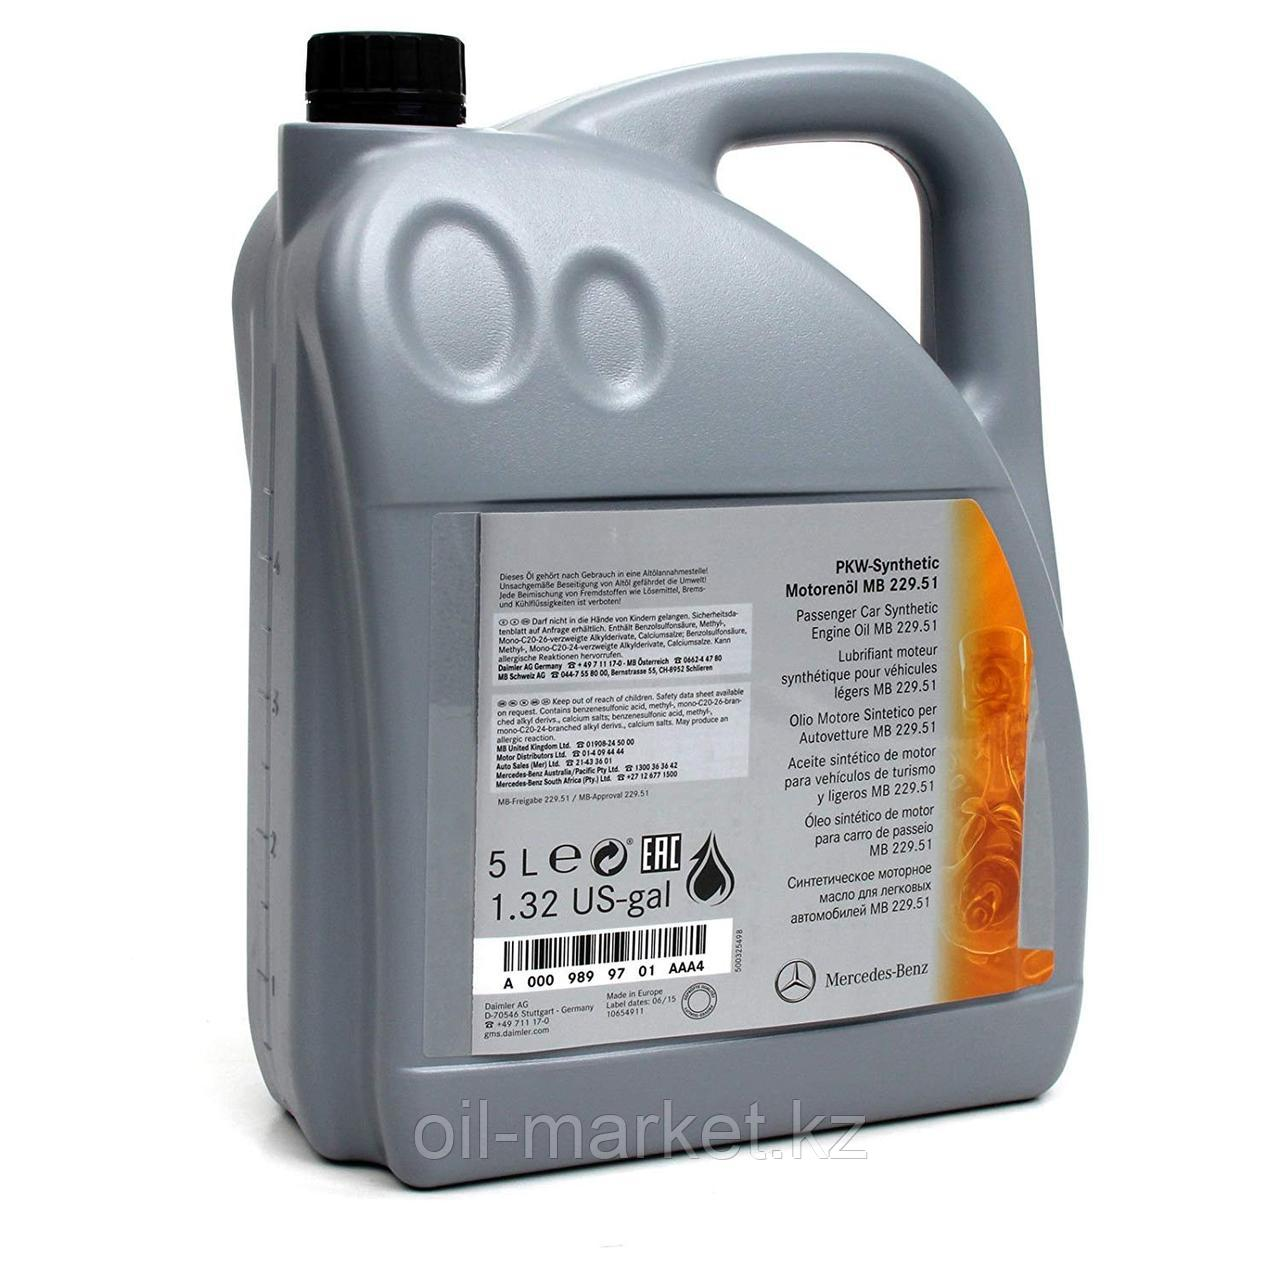 Моторное масло Mercedes-Benz Genuine Engine Oil MB 229.51 5W-30 5L A0009899701AAA4